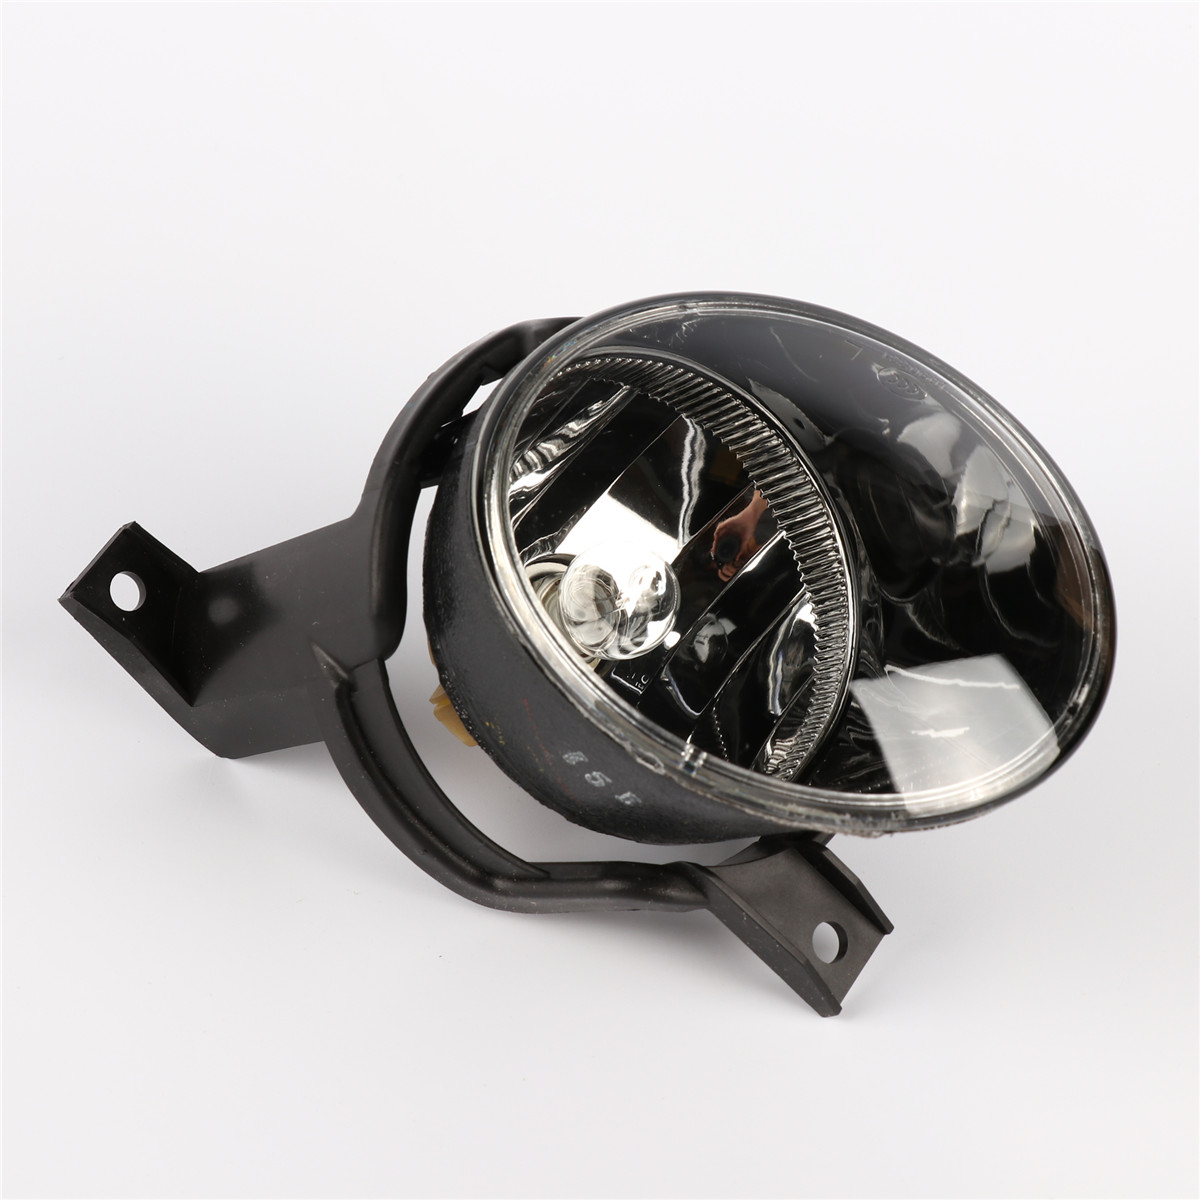 1PCS OEM Front Left Halogen Fog Lamp Light 18G 941 699 B For VW Golf MK6 Jetta MK6 free shipping new pair halogen front fog lamp fog light for vw t5 polo crafter transporter campmob 7h0941699b 7h0941700b